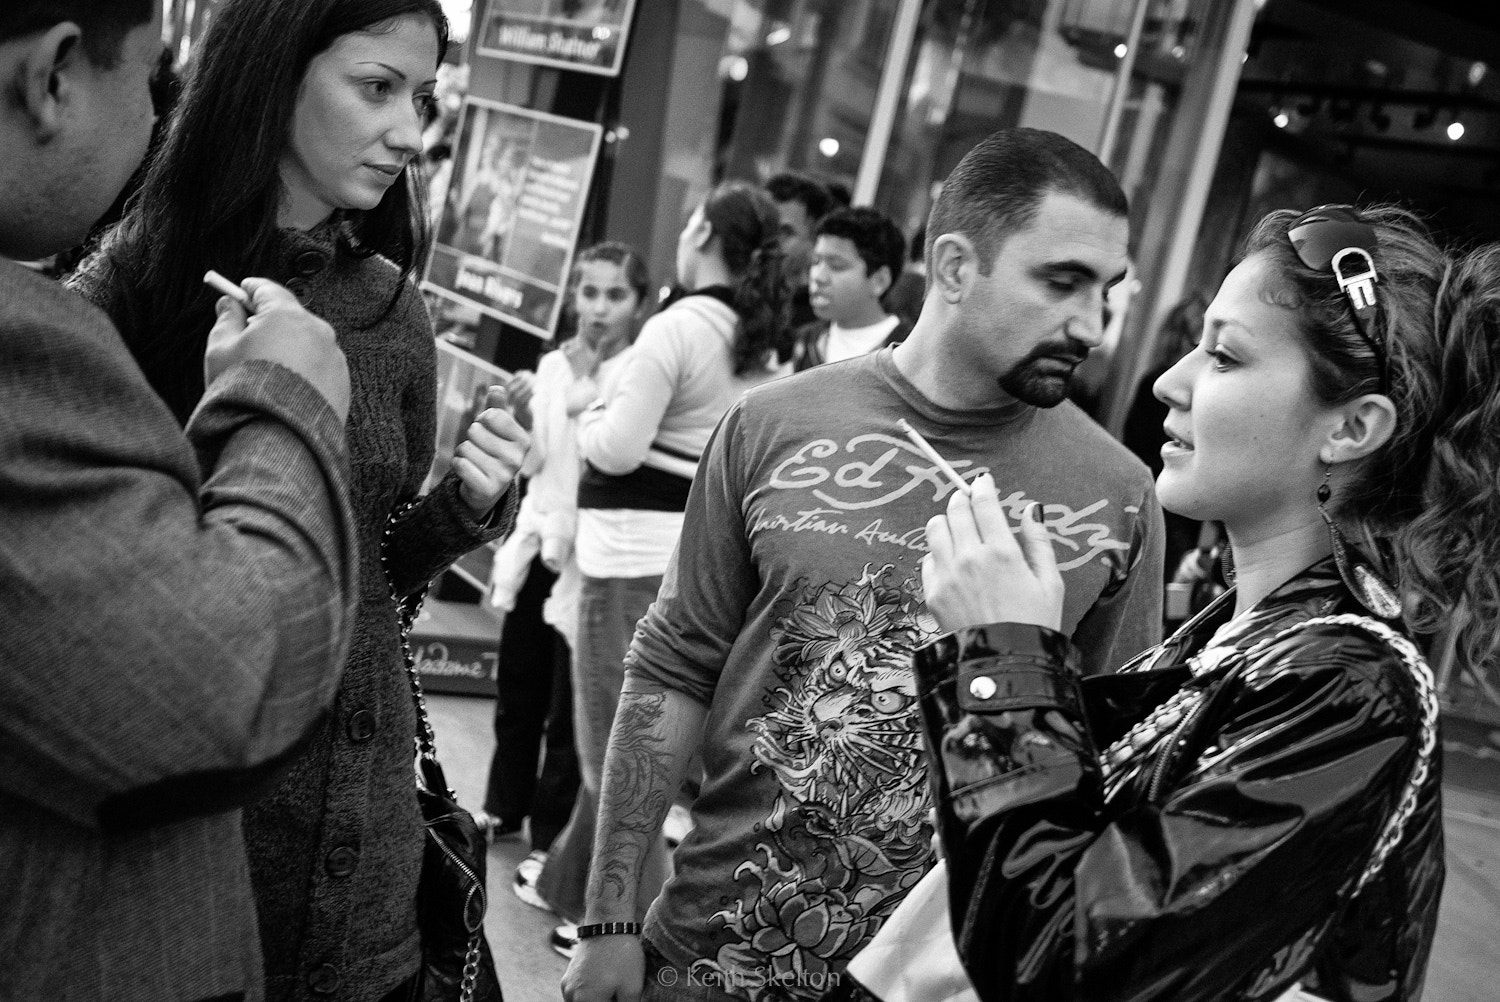 Photograph Los Angeles Street Photography by Keith Skelton on 500px